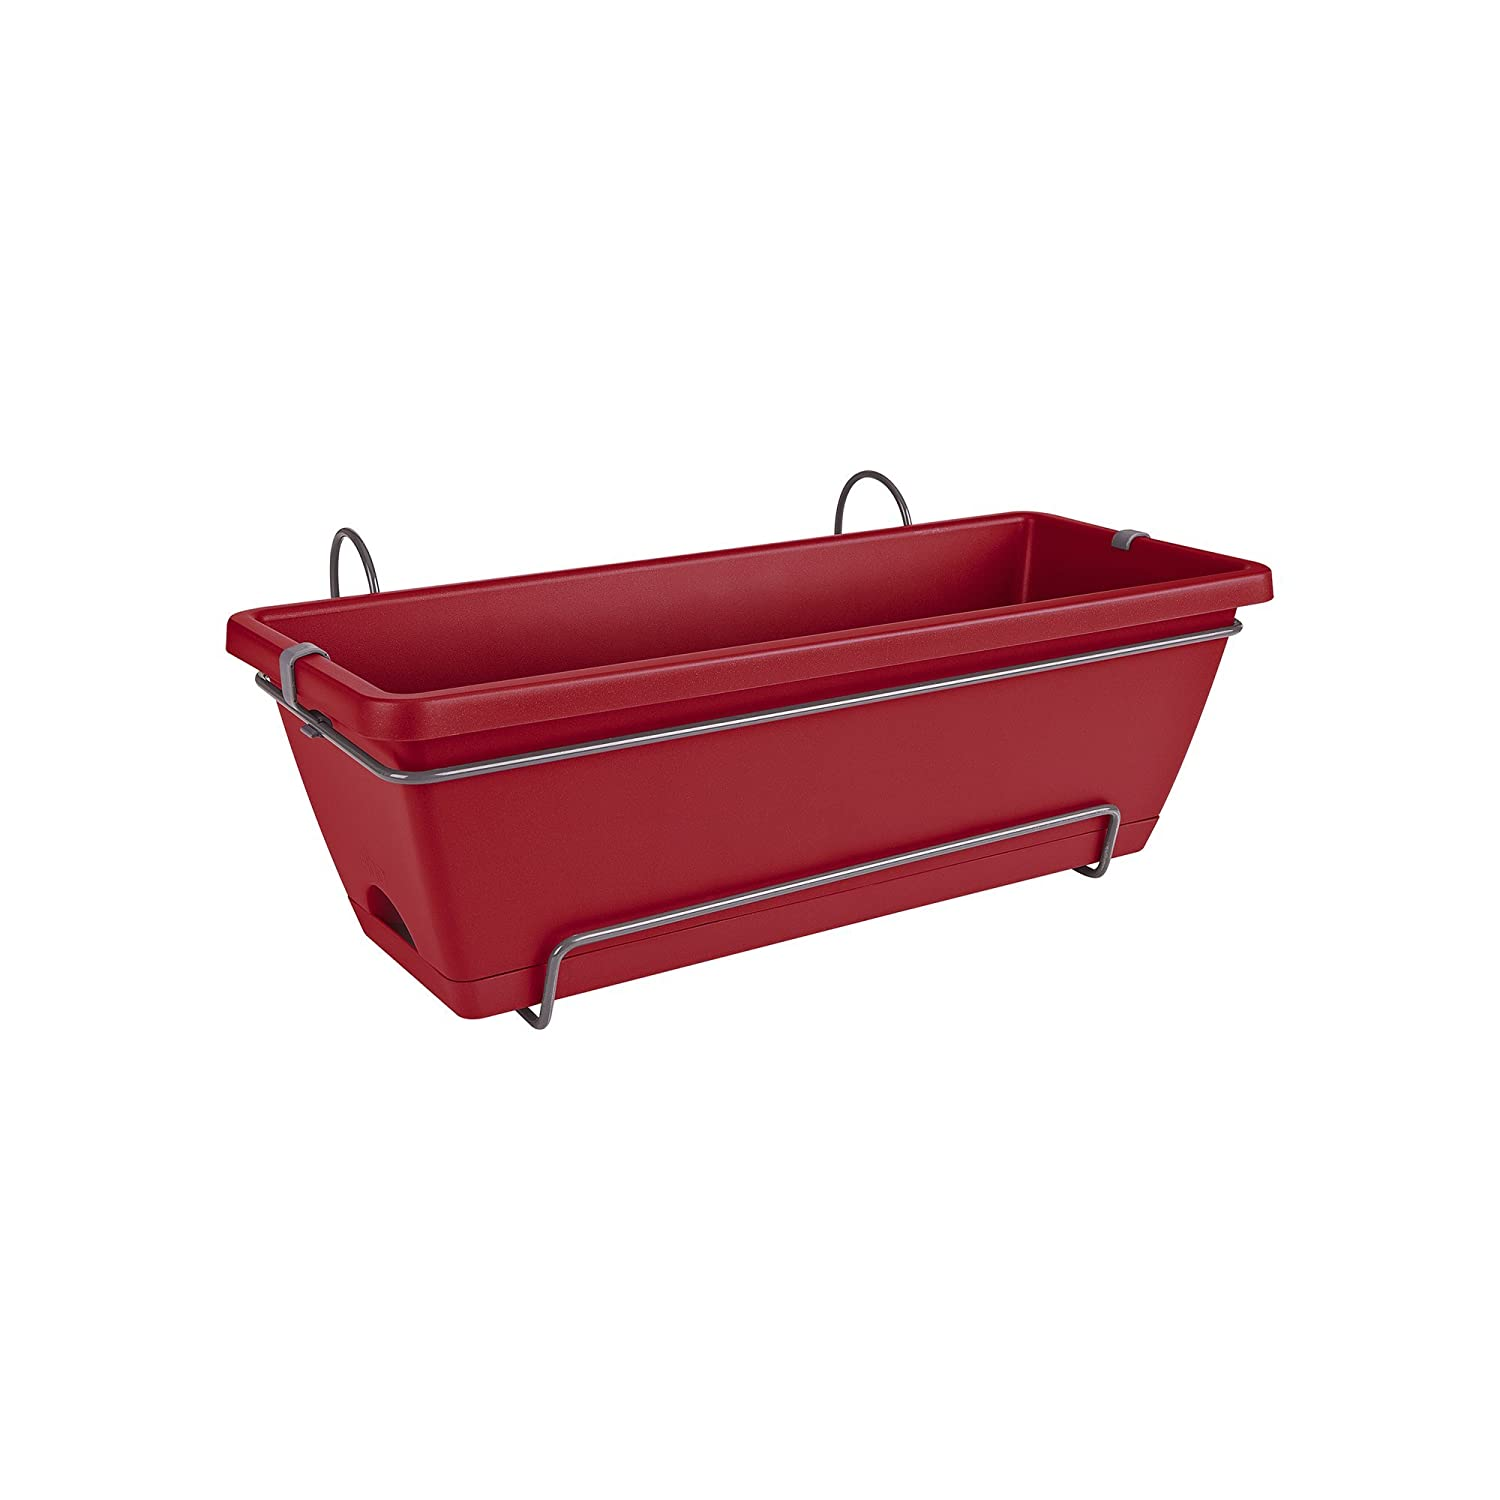 Elho Barcelona all-in-One Fioriera, Mirtillo Rosso, 50 x 28.6 x 21.4 cm 5011805070500